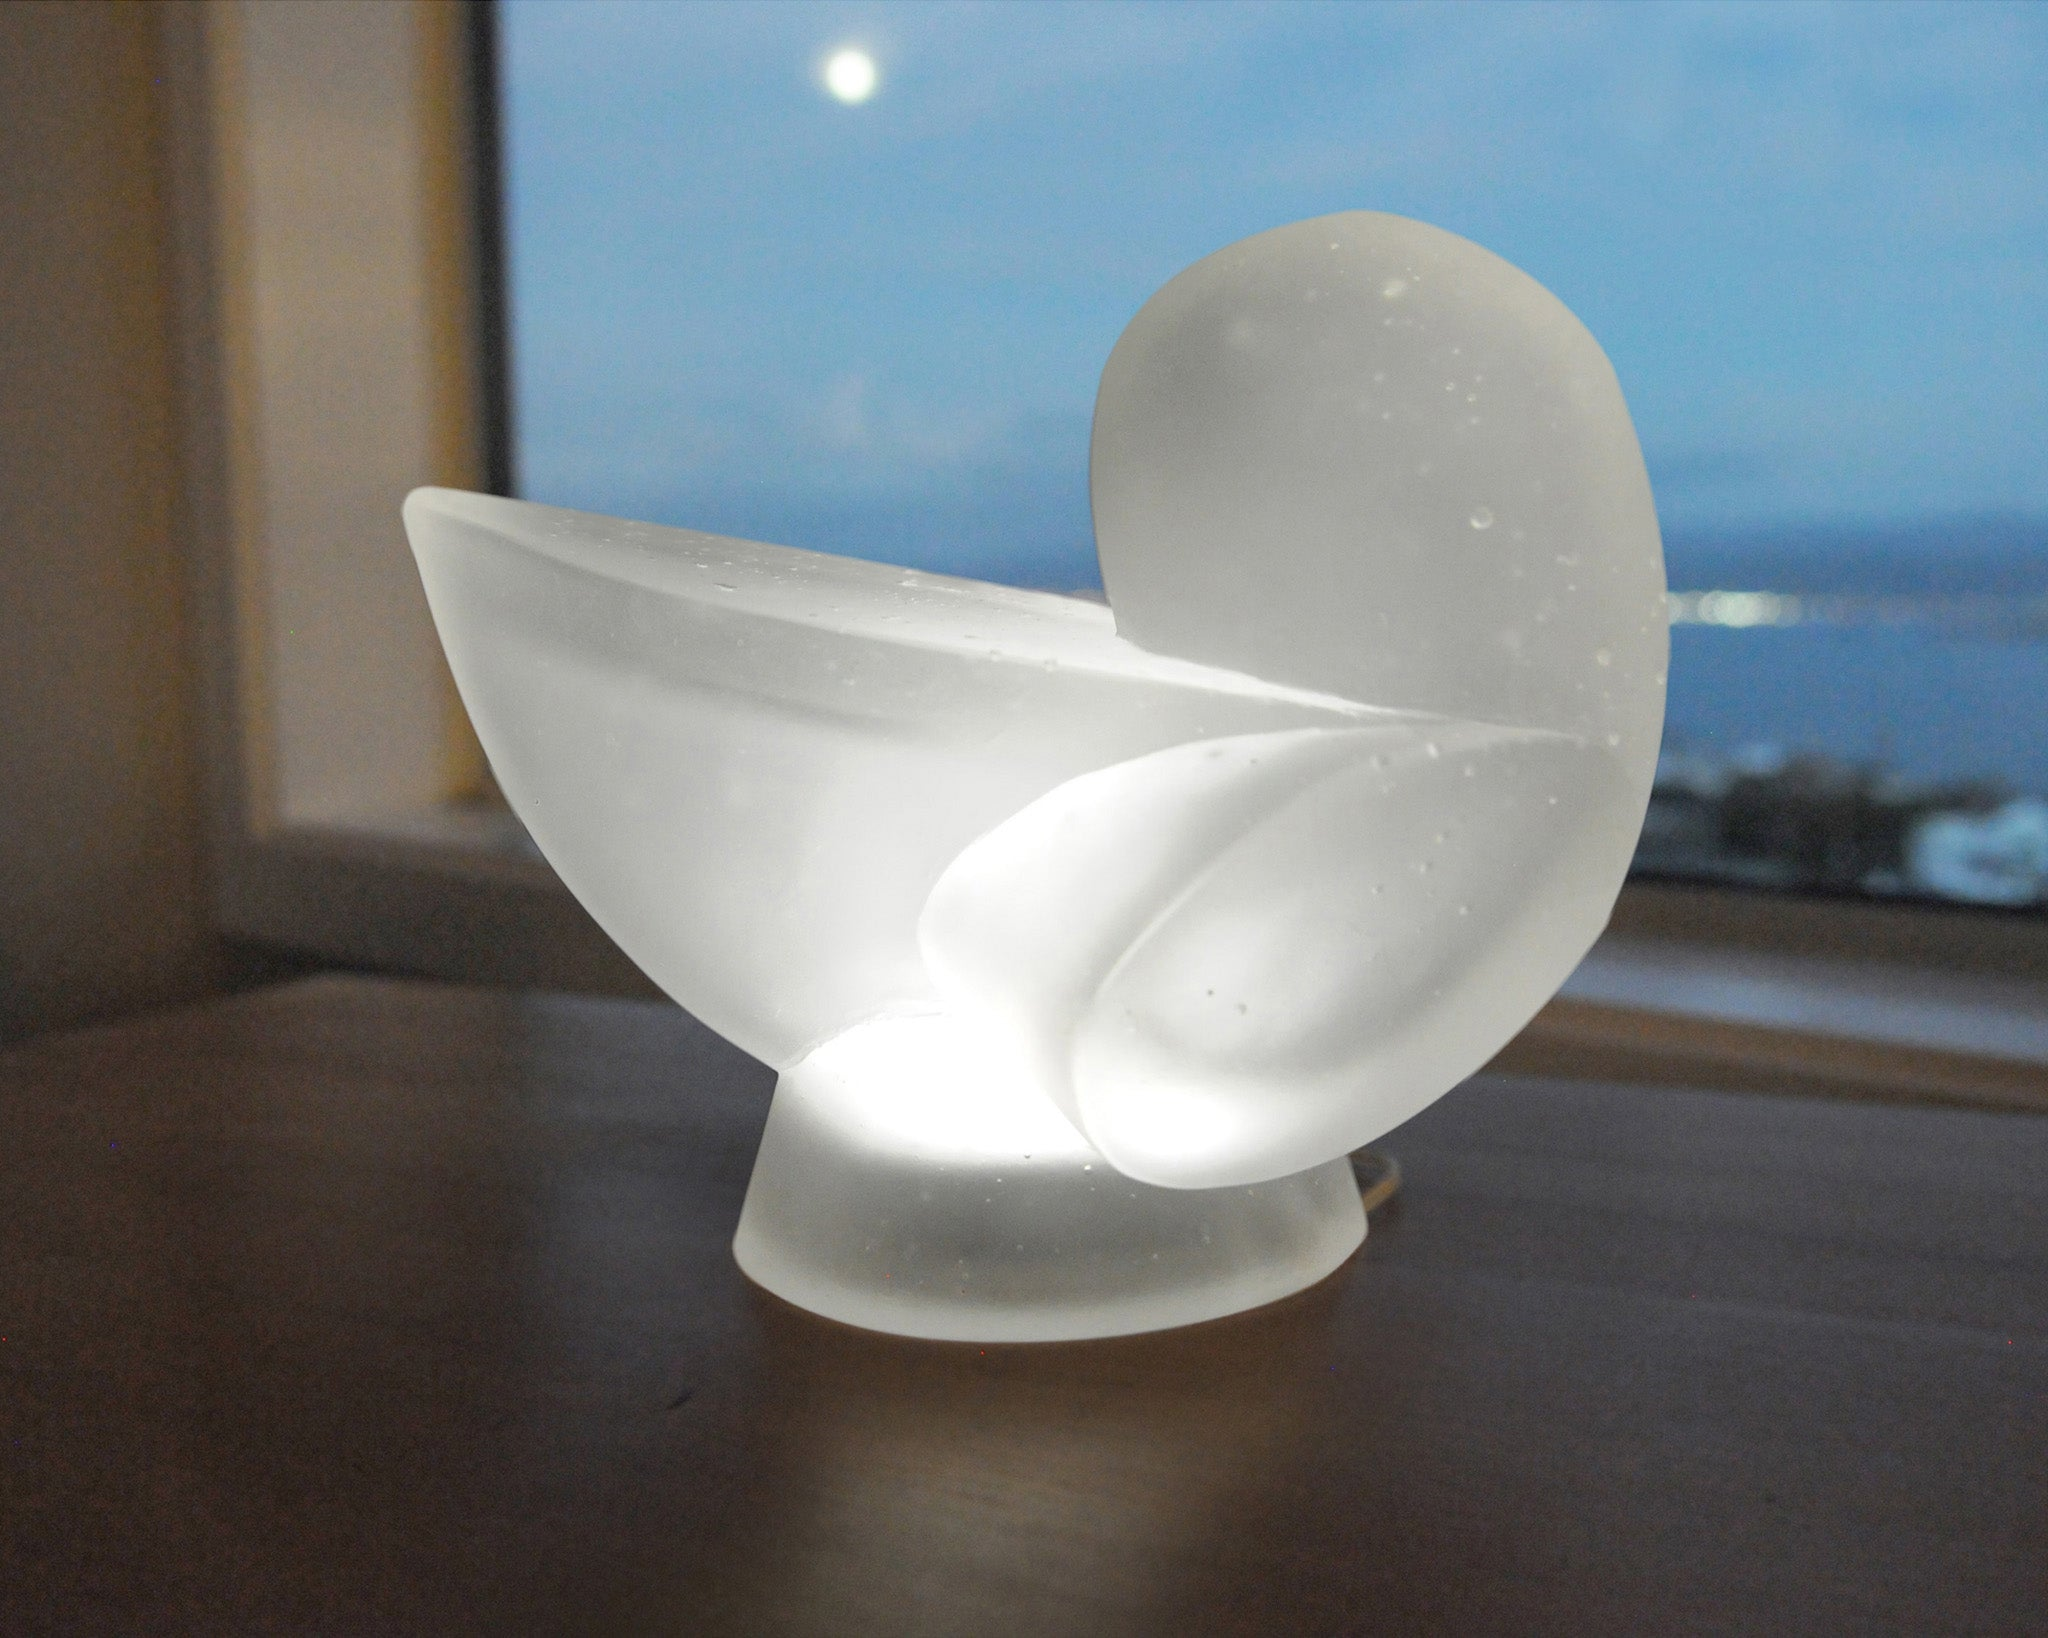 Abstract cast glass sculpture lamp with internal light for sale by Stephen Williams.